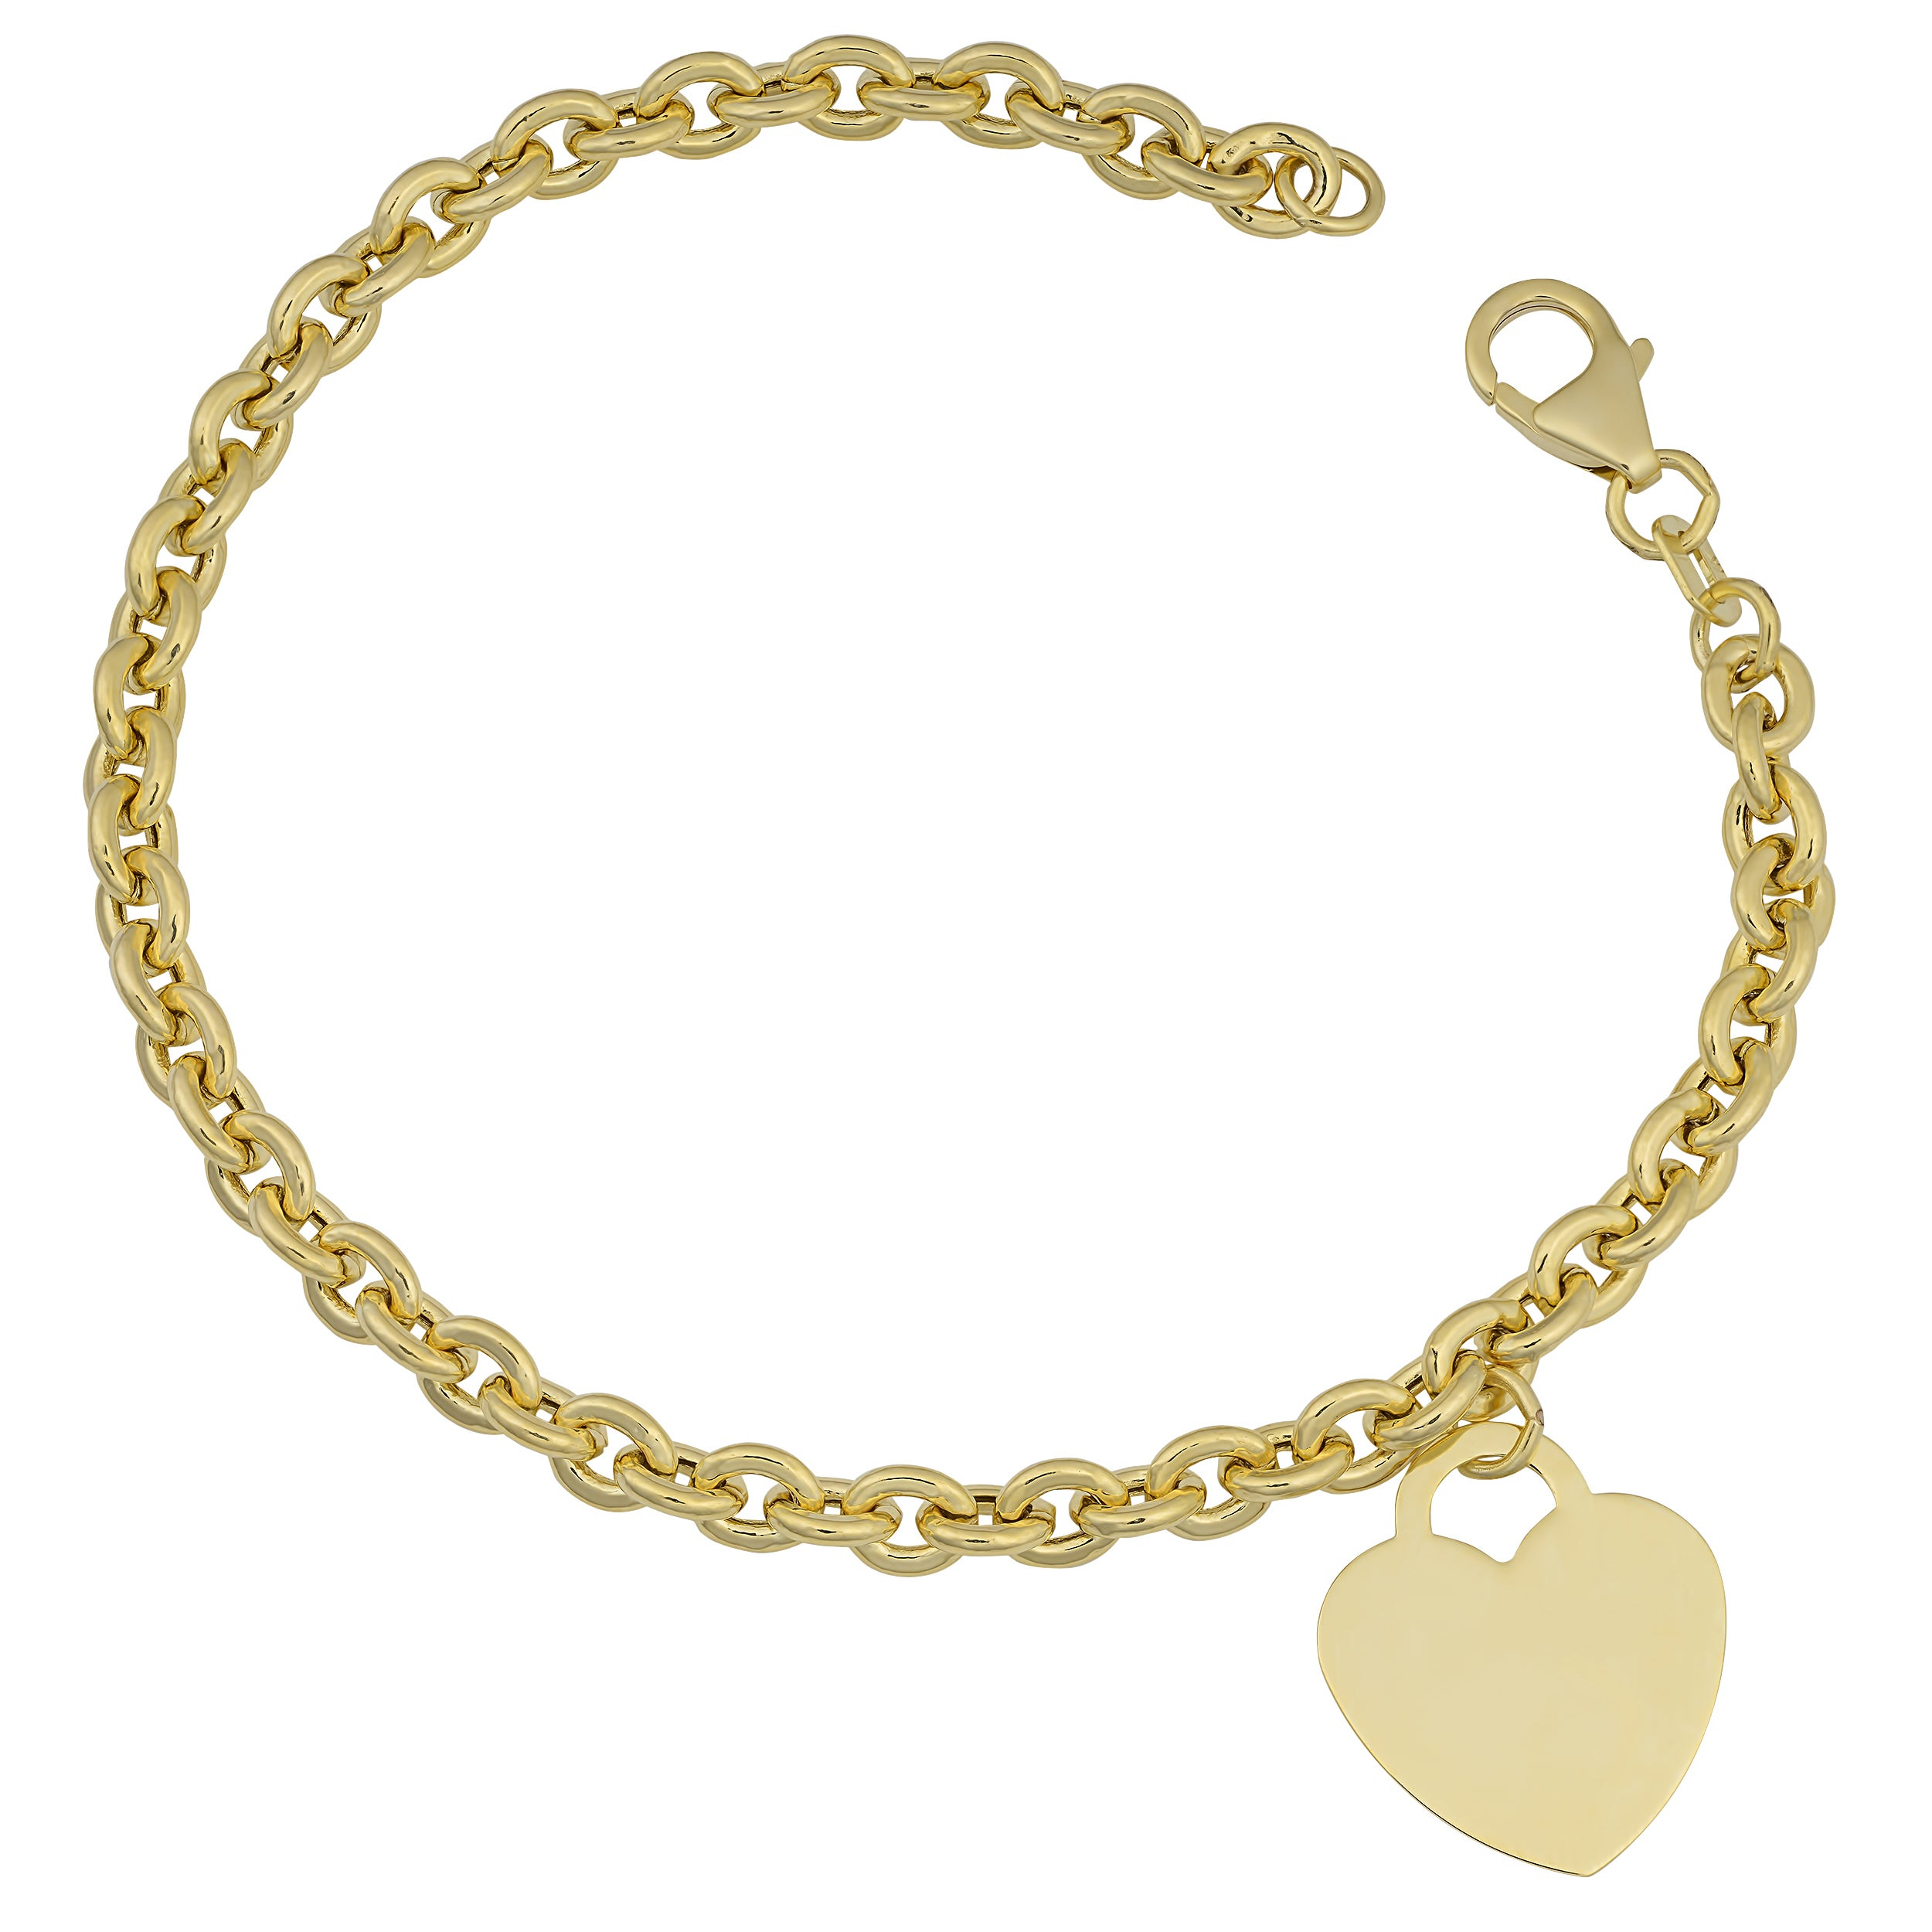 bracelet heart makarojewelry of products gold